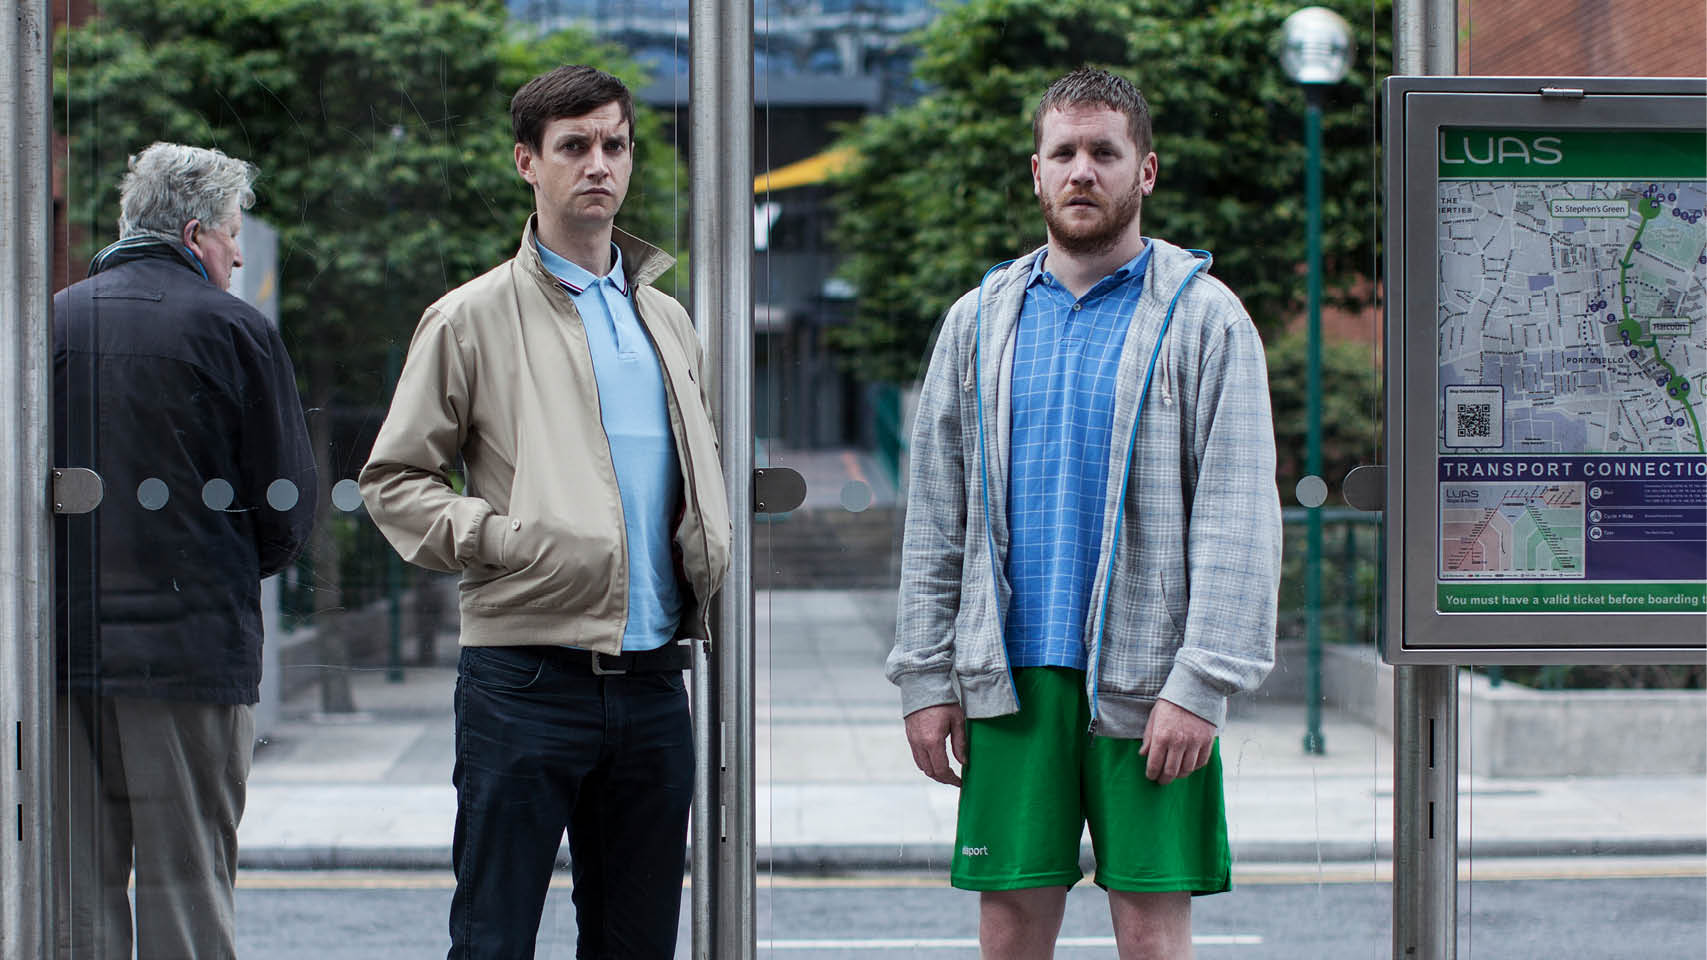 Dublin Oldschool poster of 2 people on a street